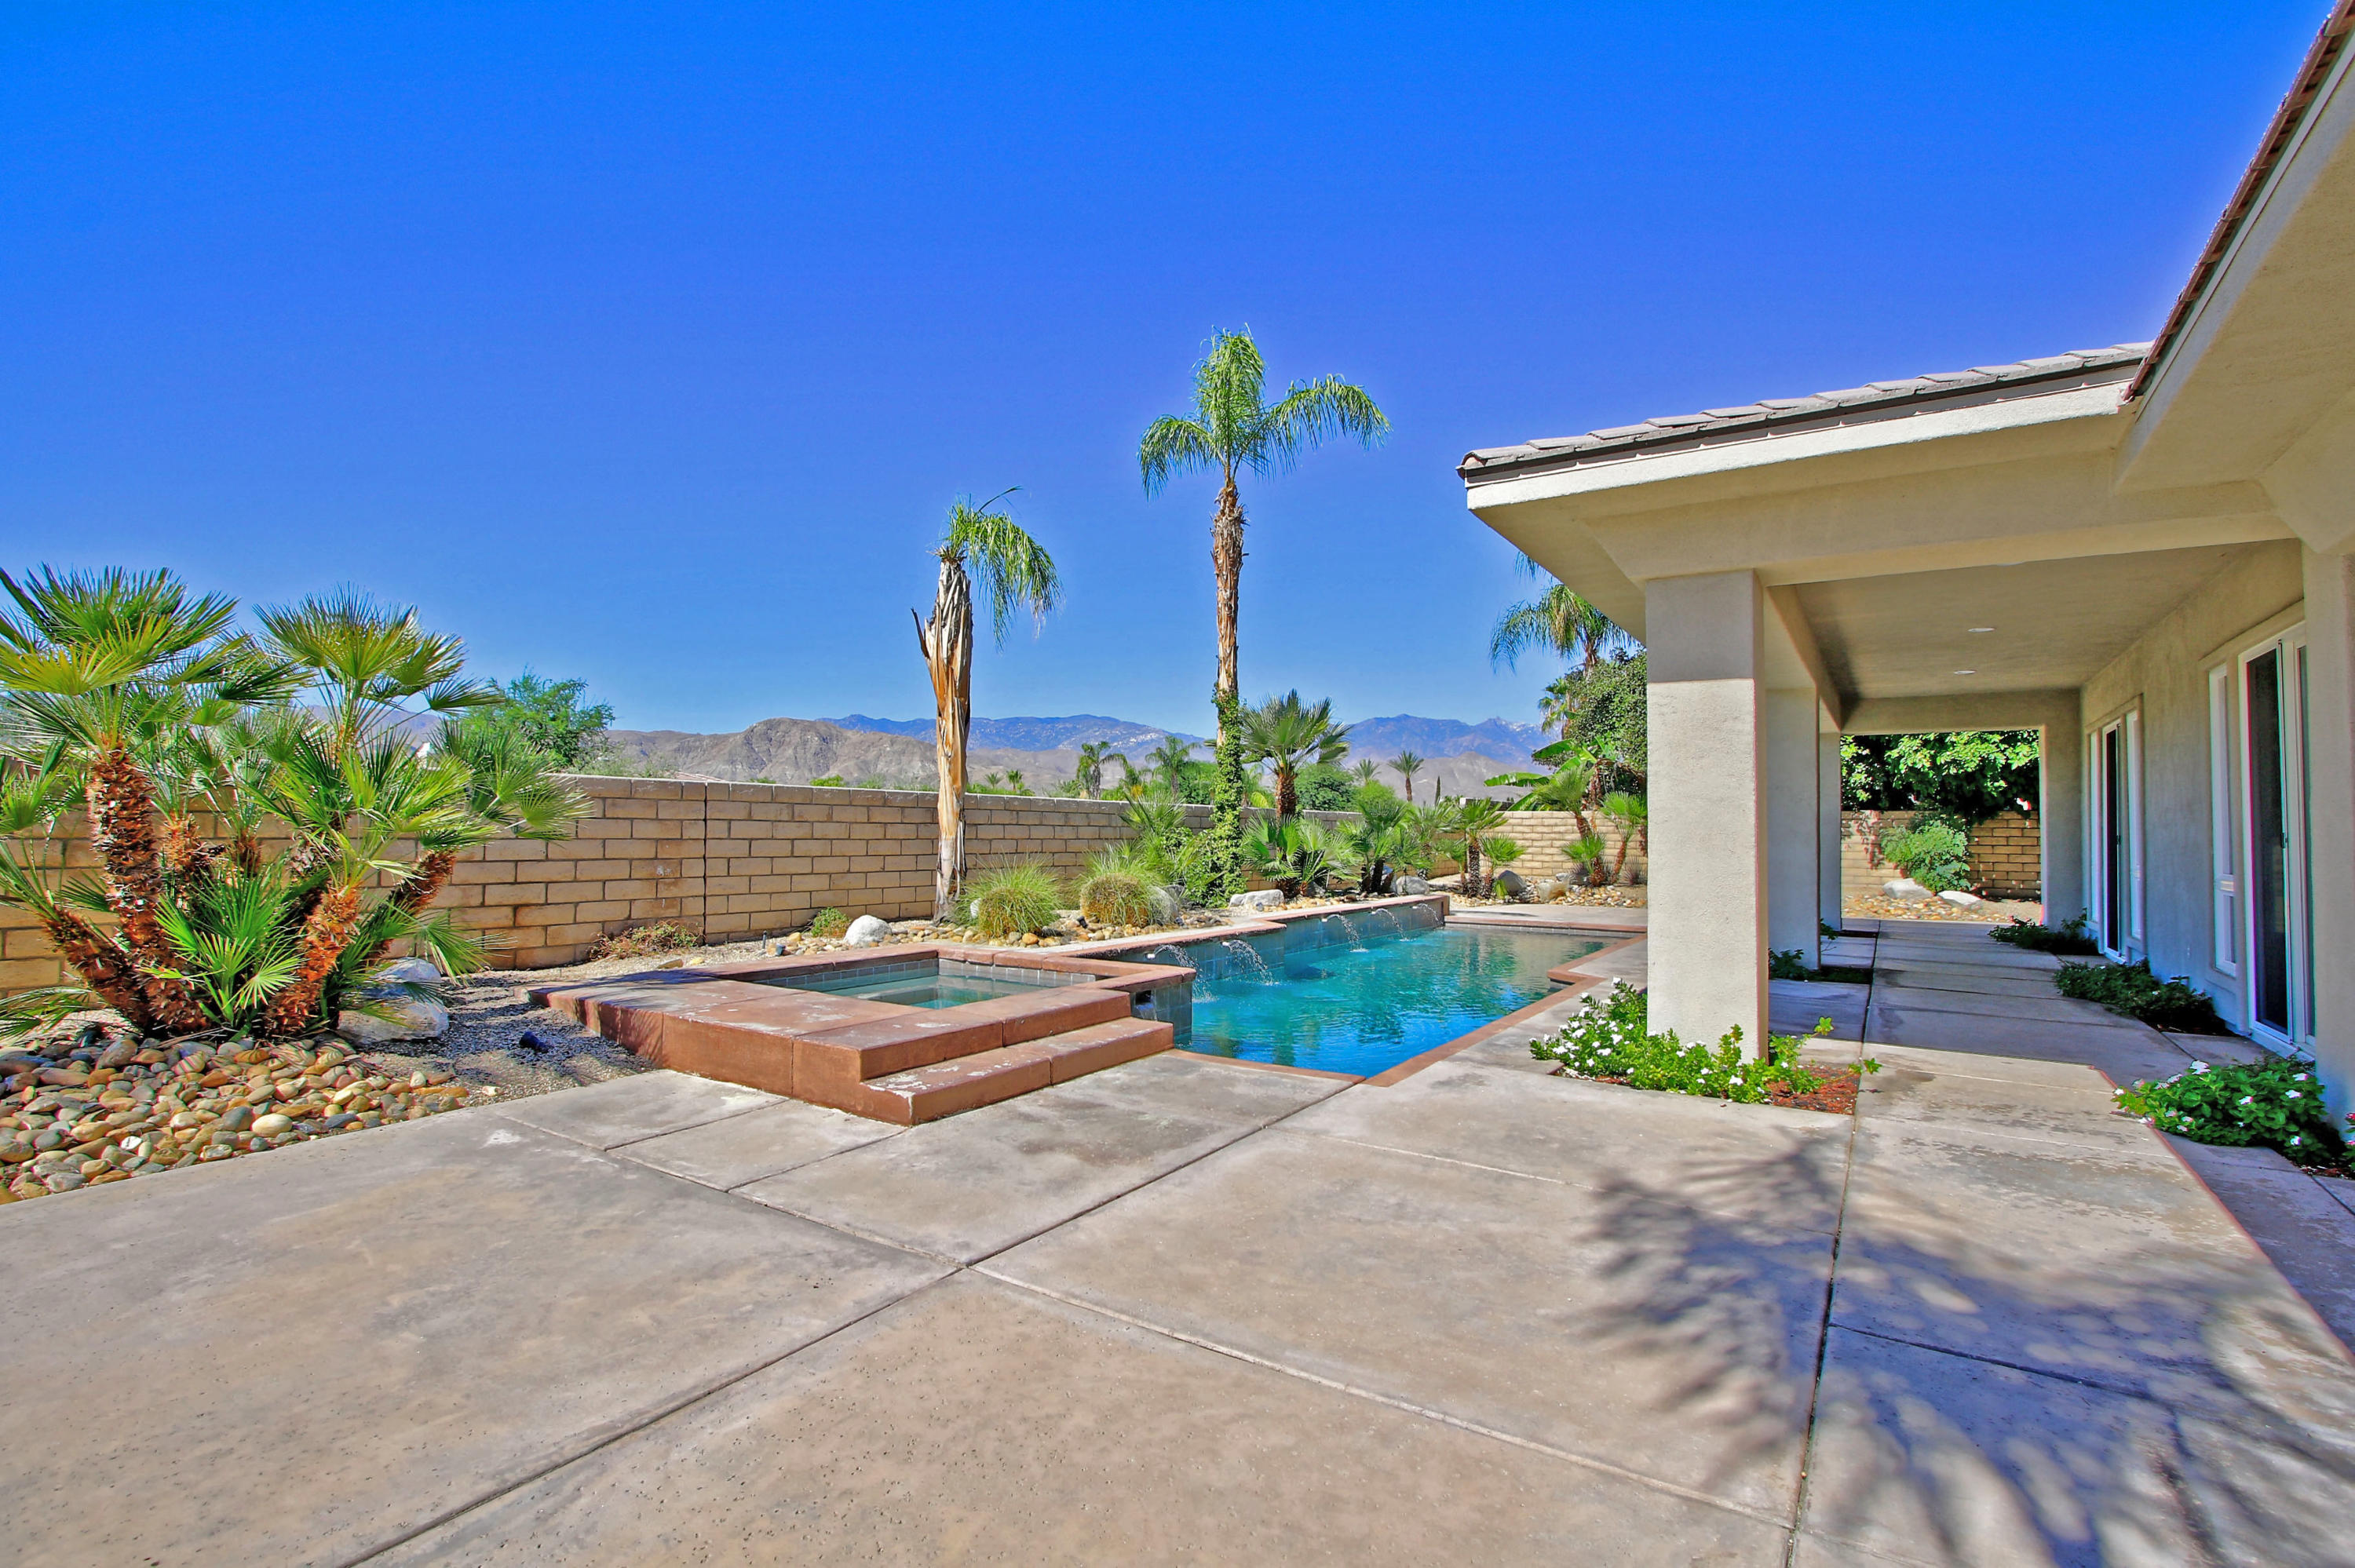 20 Oakmont Drive, Rancho Mirage, California 92270, 3 Bedrooms Bedrooms, ,4 BathroomsBathrooms,Residential,For Sale,20 Oakmont Drive,219045562